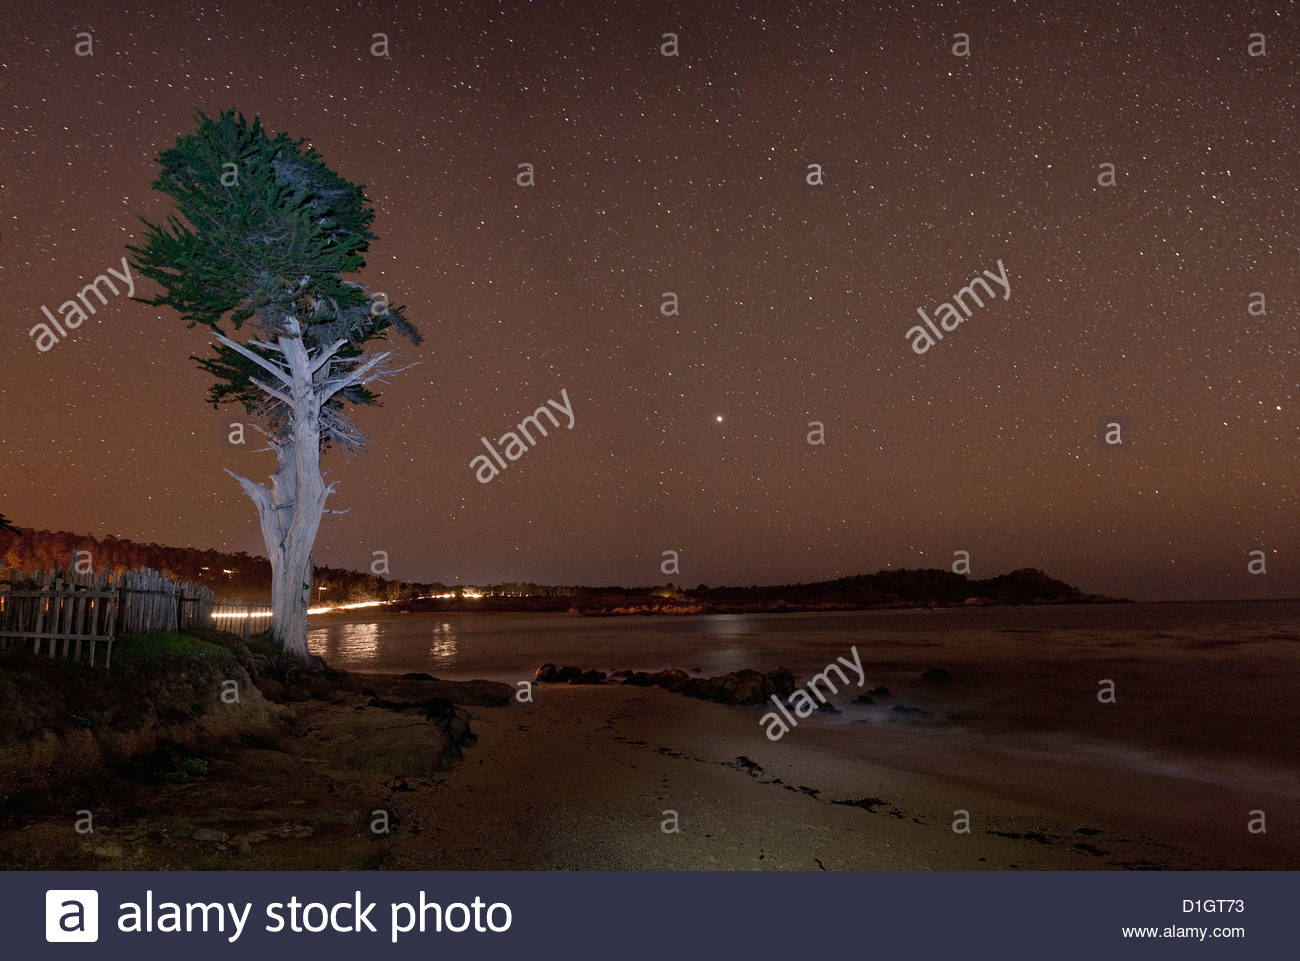 Monterey Bay with tree and night sky with stars, Monterey, California, United States of America, North America - Stock Image